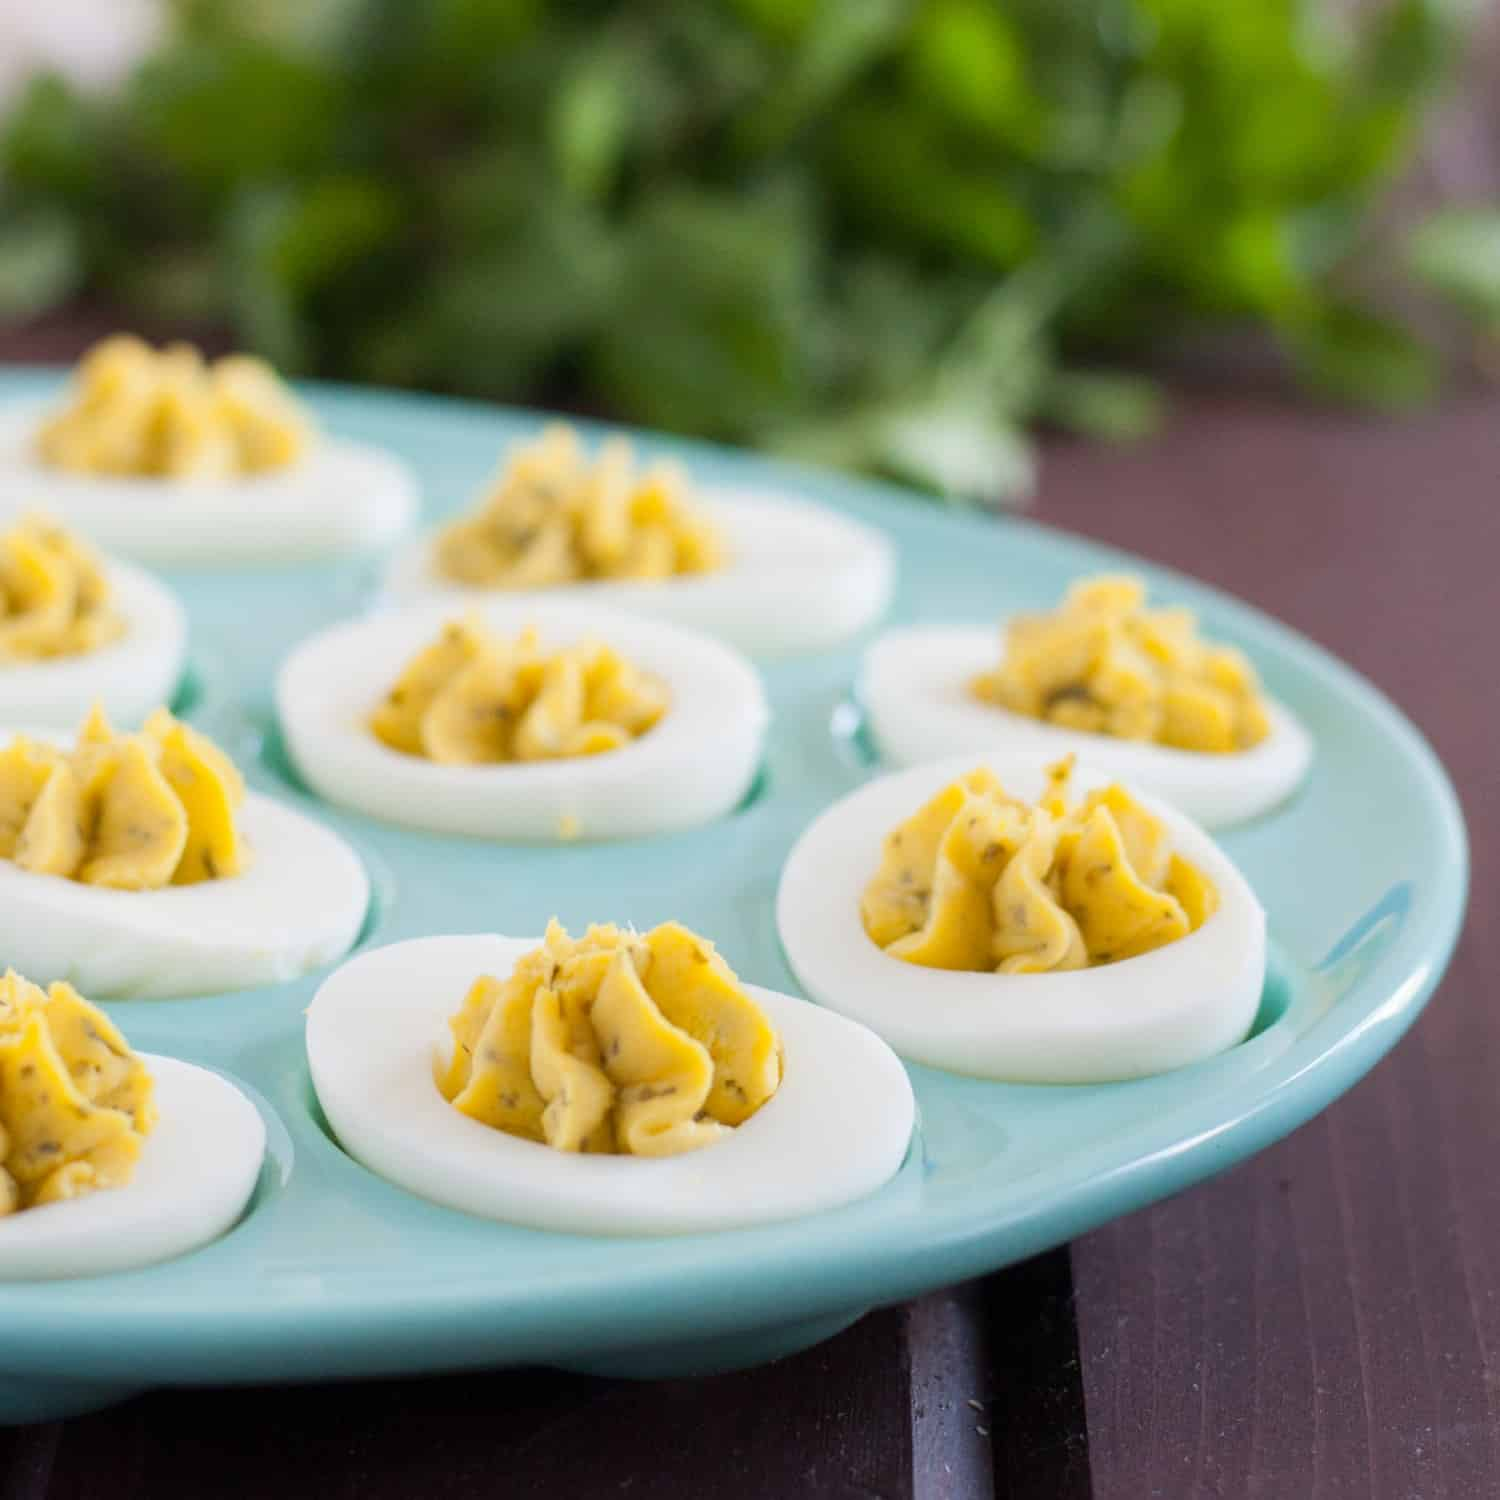 Chimichurri deviled egg recipe - a unique and flavorful deviled egg recipe with NO mayo that everyone loved!